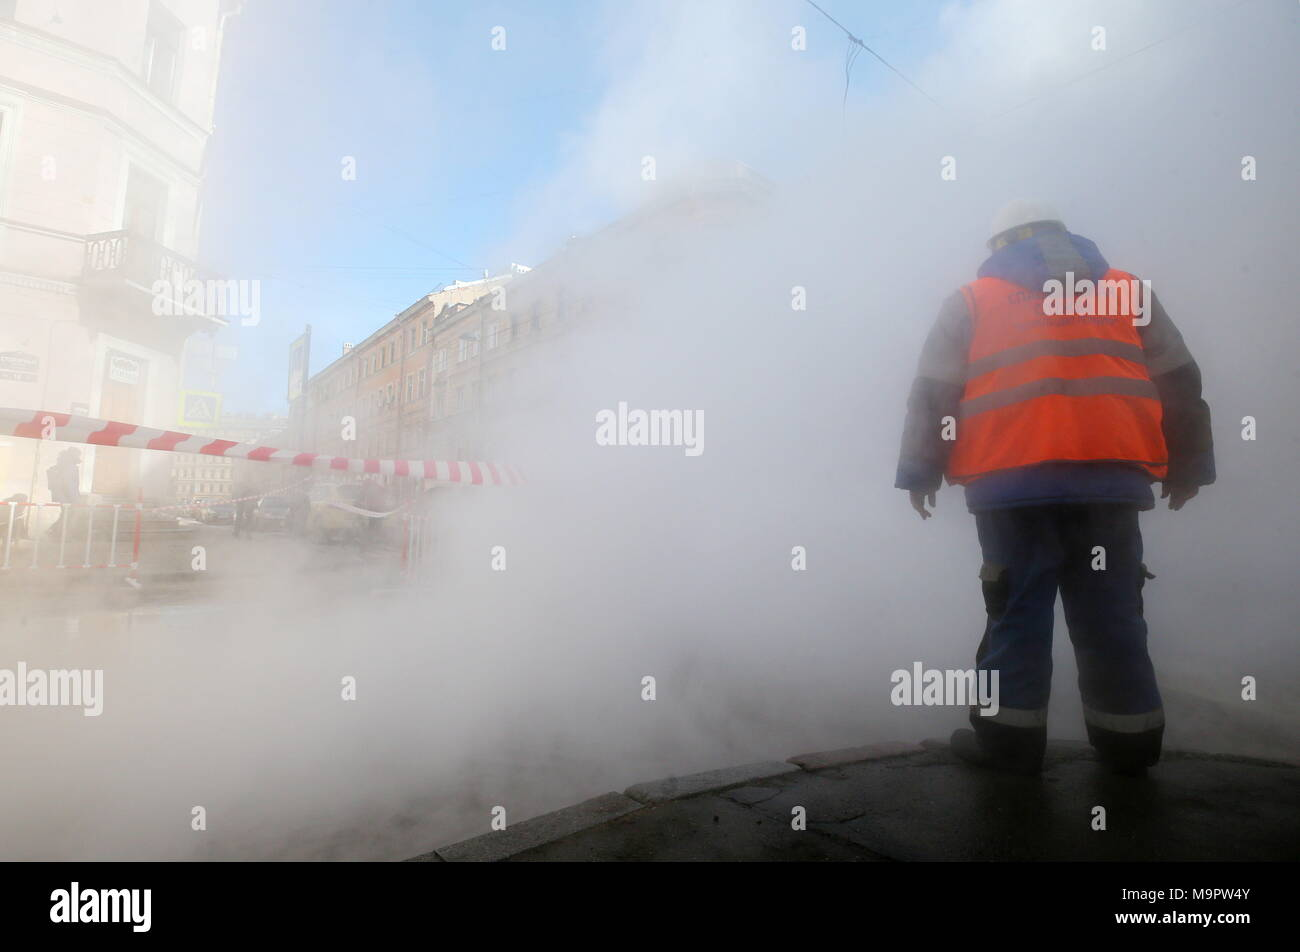 St petersburg russia 28th mar 2018 st petersburg russia march st petersburg russia march 28 2018 steam rises from water at a temperature of 110 c 230 f flooding st petersburgs stolyarny lane as a publicscrutiny Gallery